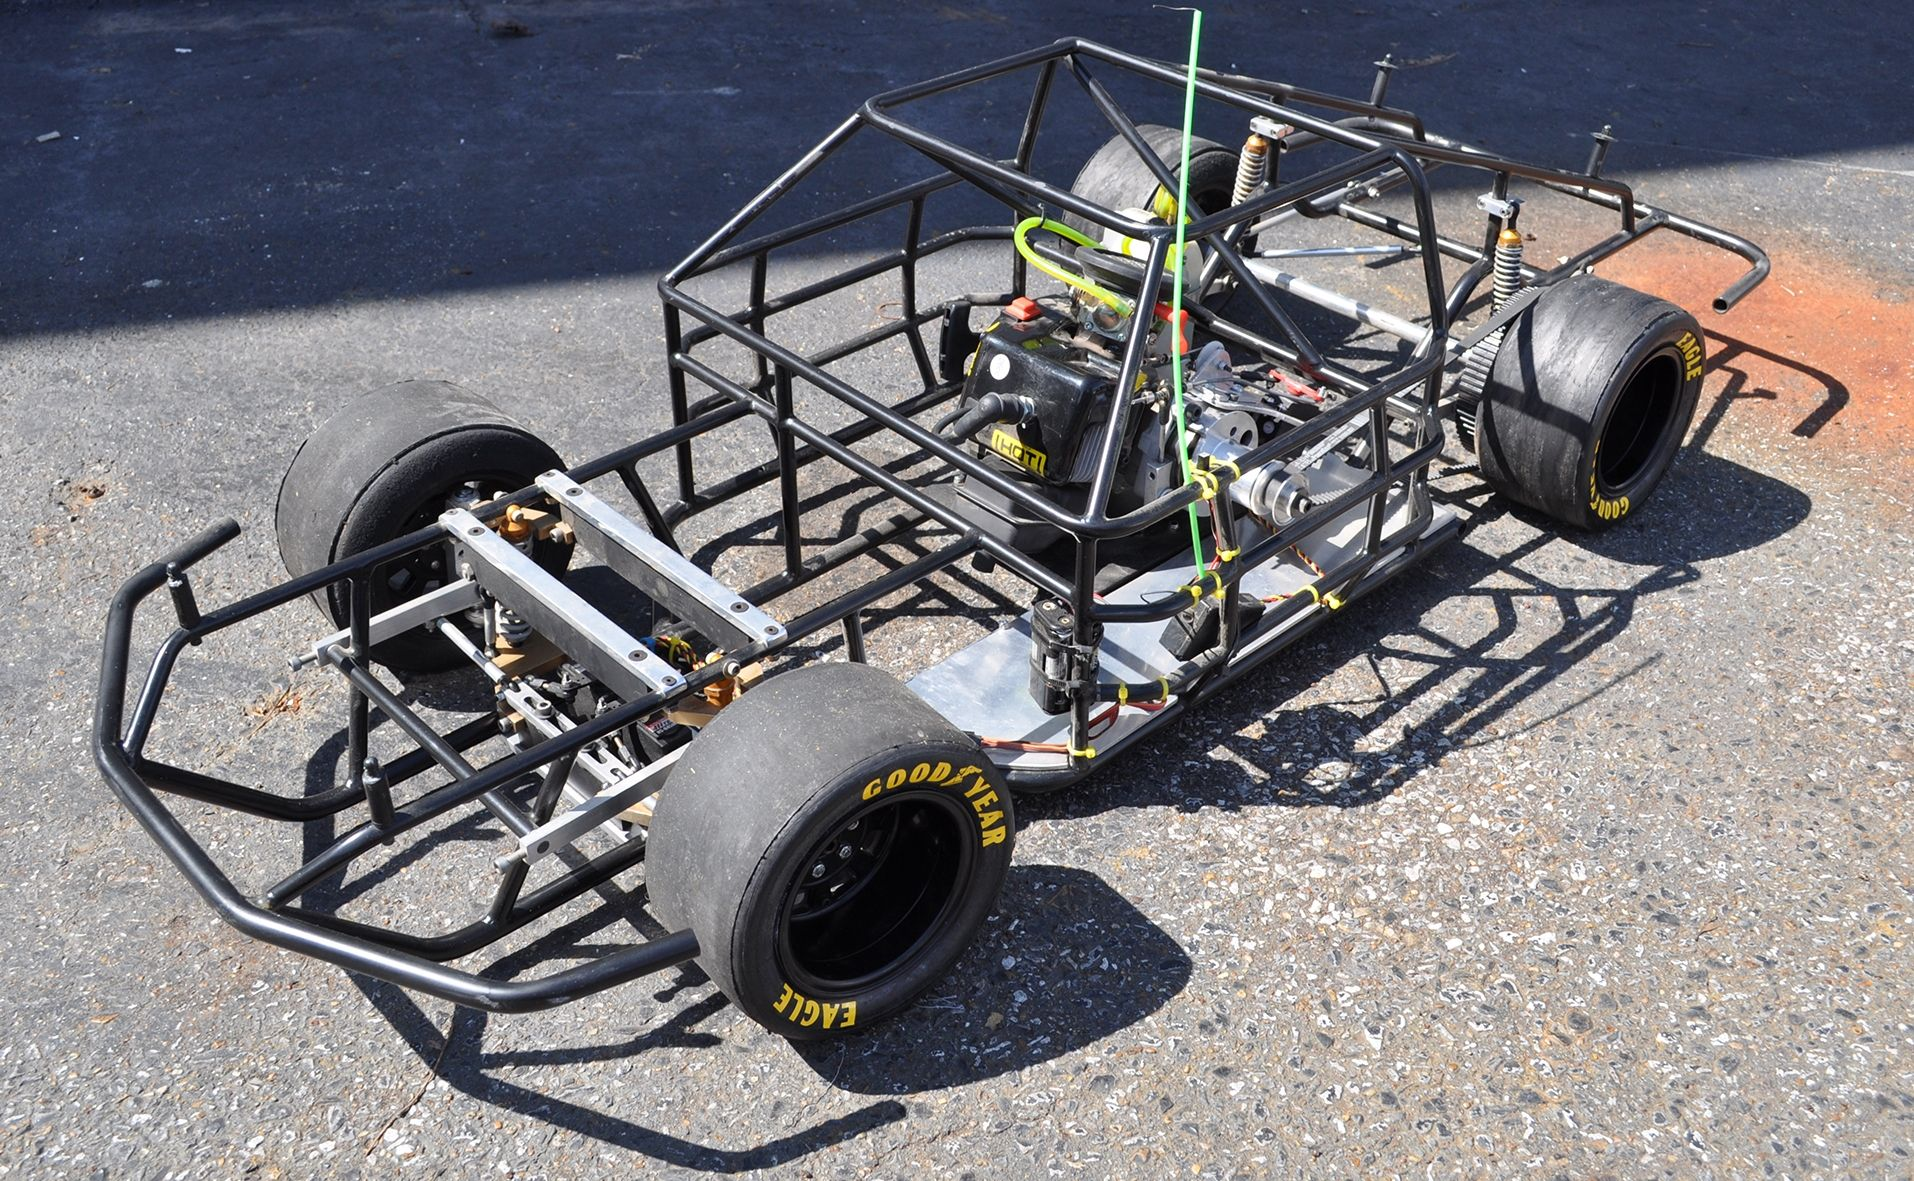 Chassis on 1 4 scale rc nascar tony stewartradio controlrc carsnascar remotescaletrucks